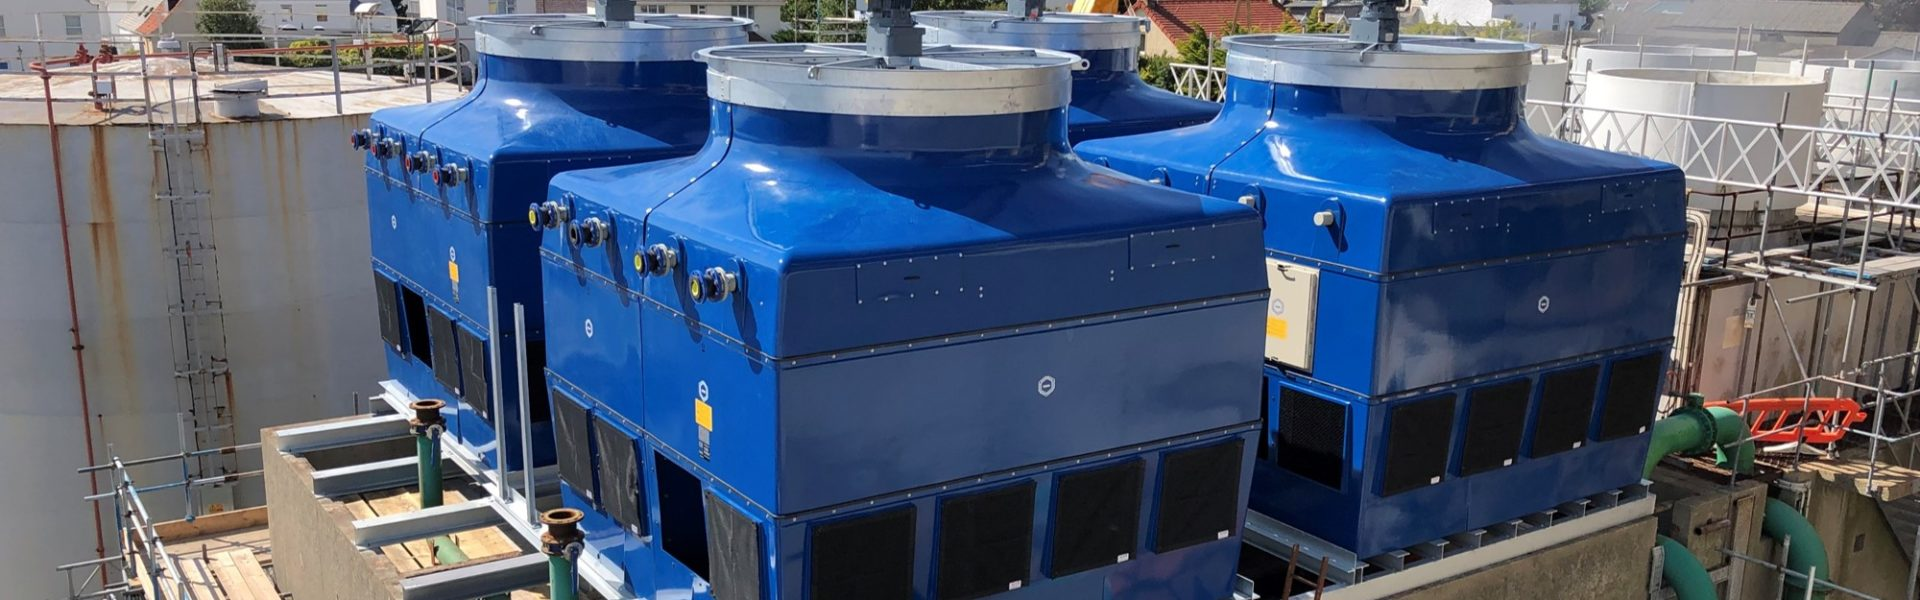 Products-coolingtowers-image